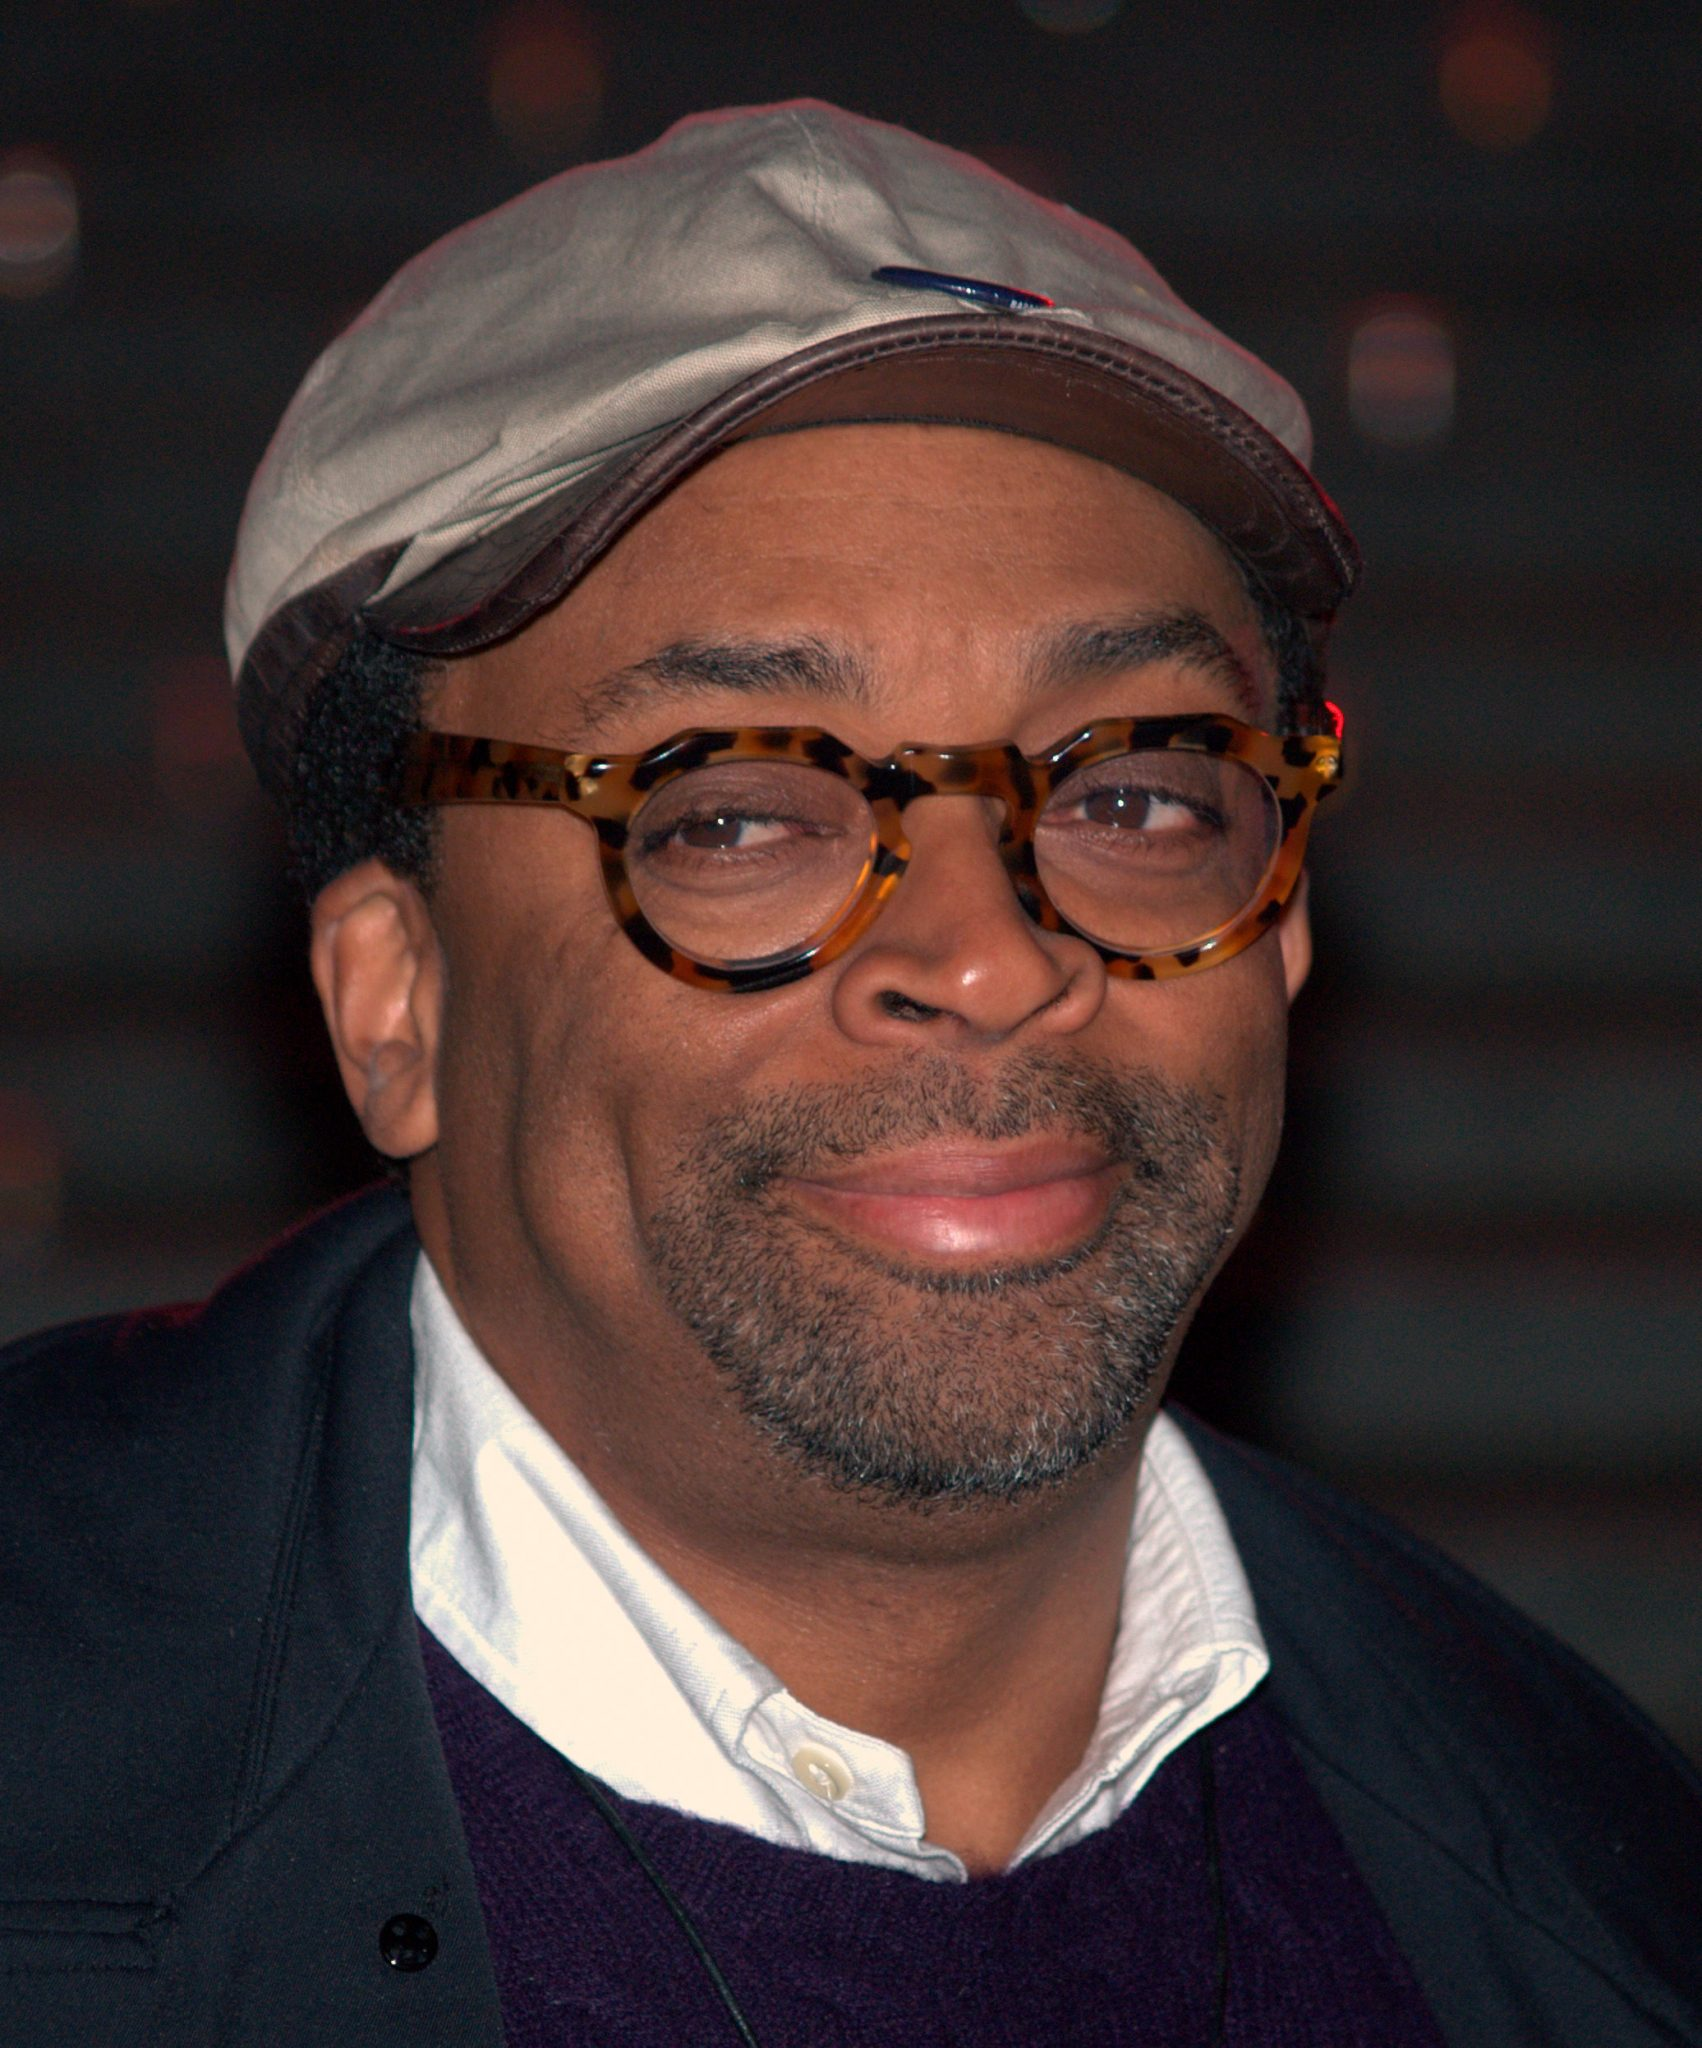 A photo of Spike Lee